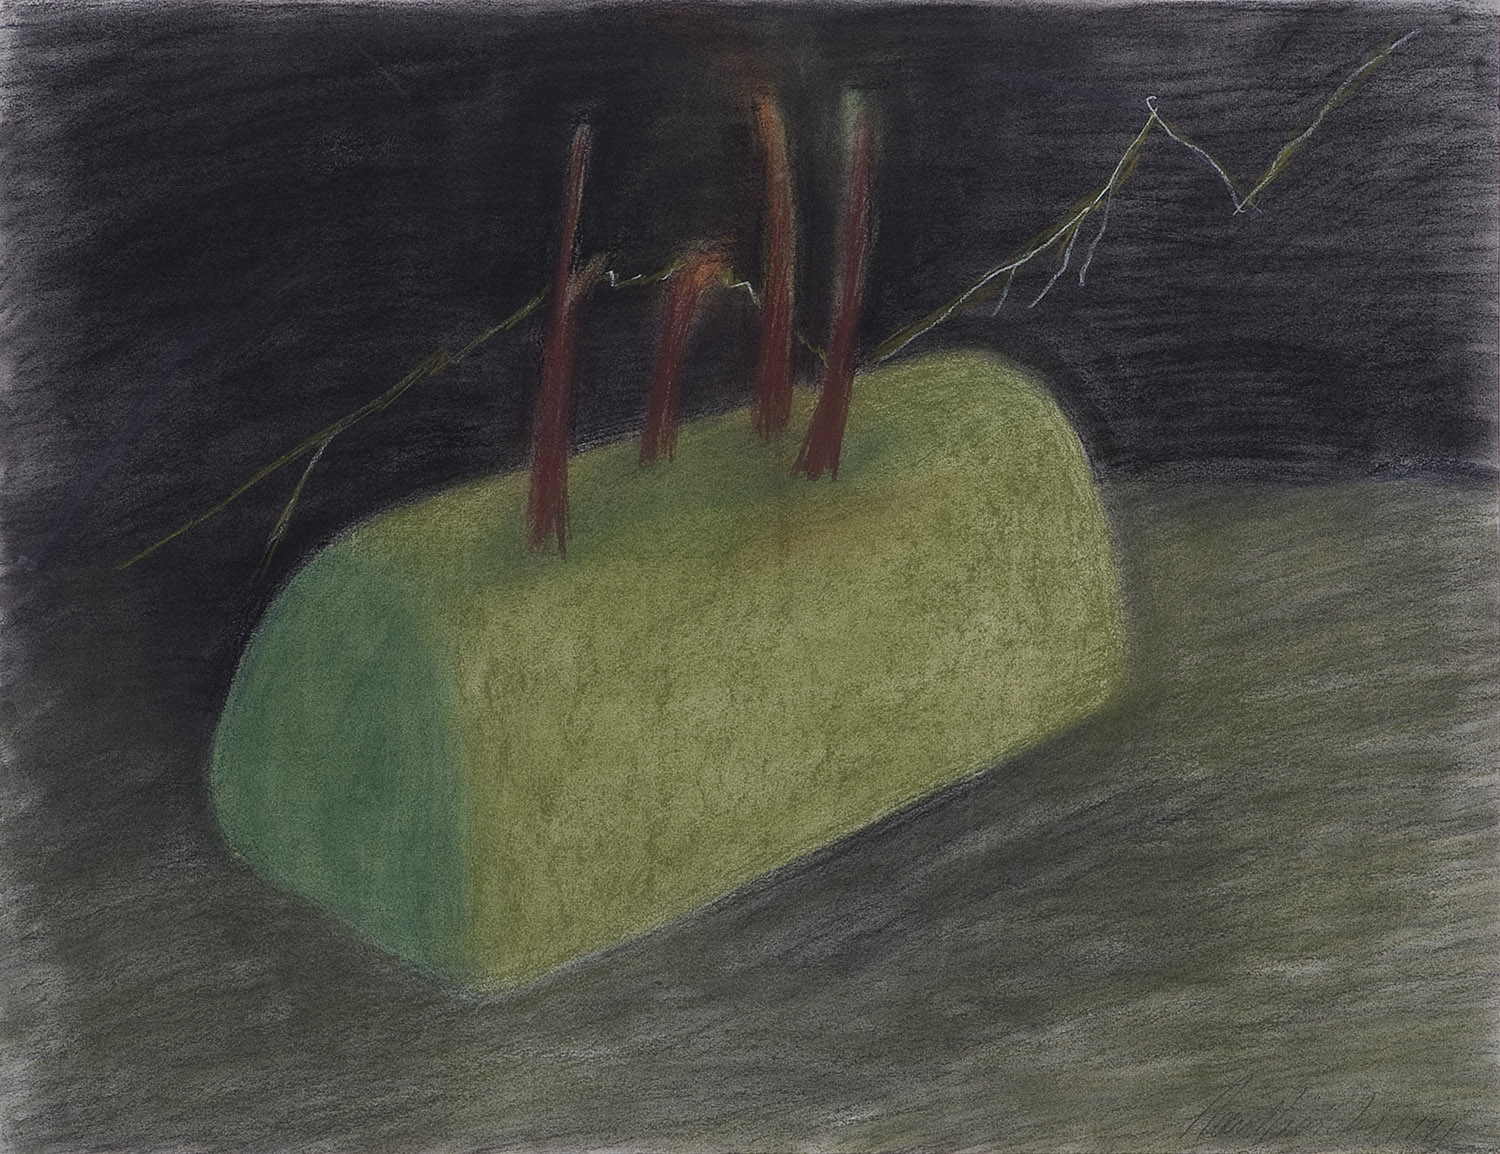 o. T. (Thunderstorm with Hedge) | 1990 | Zeichnung | 50 x 64,5 cm